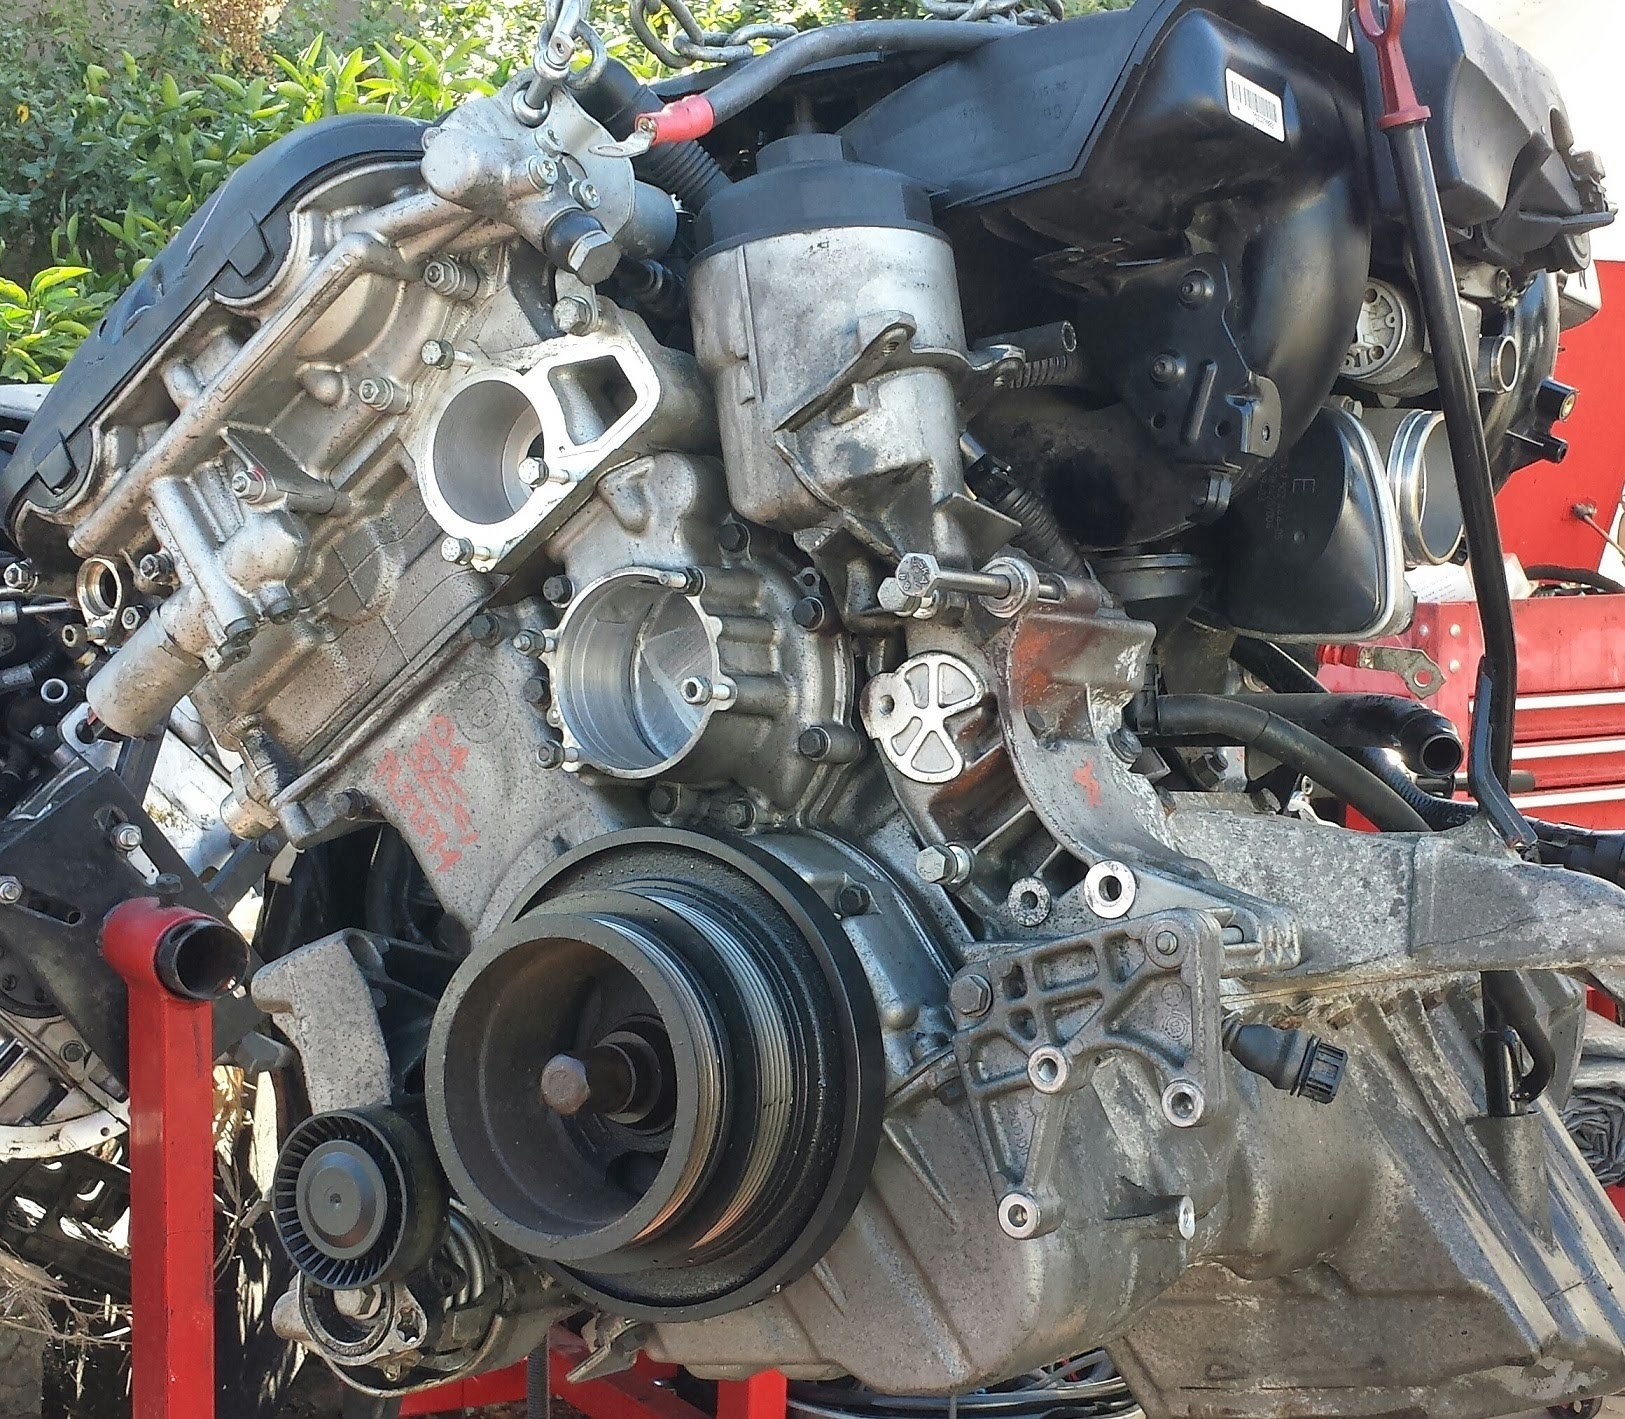 2002 bmw engine diagram collection of wiring diagram u2022 rh wiringbase today 2002 bmw 330i engine diagram 2002 bmw 745i engine diagram